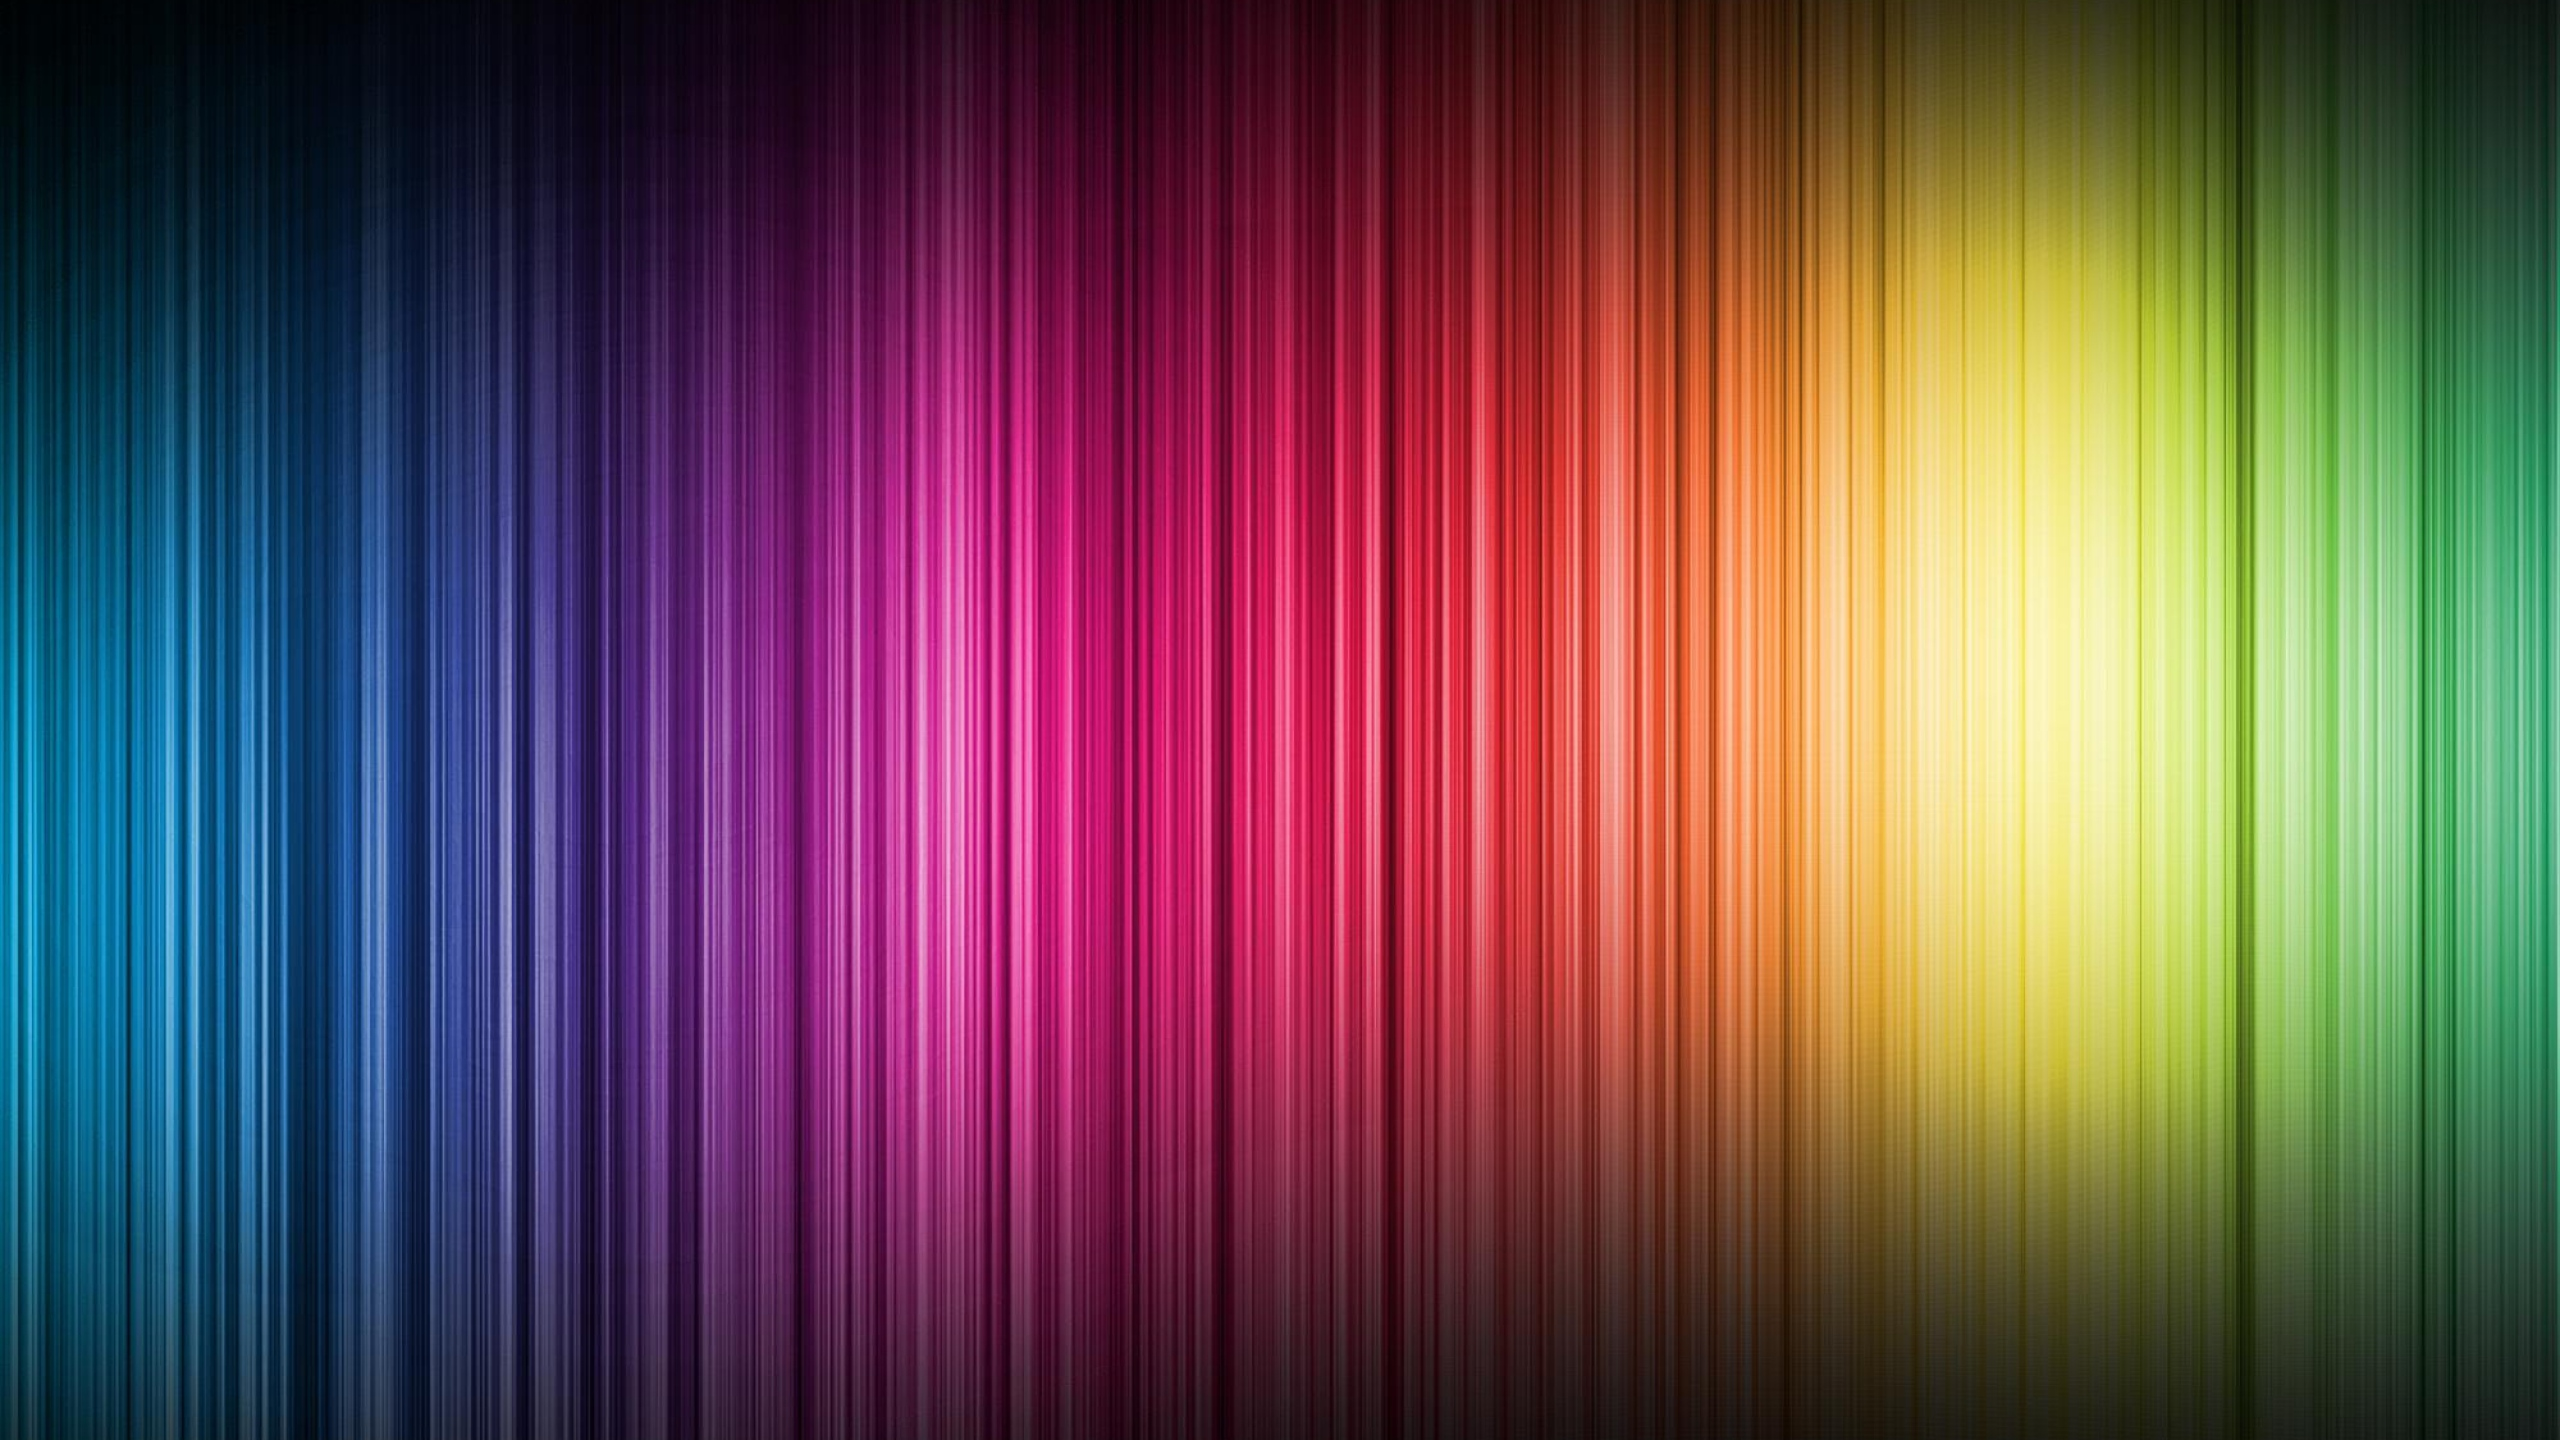 Download Wallpaper 2560x1440 color spectrum bands vertical Mac iMac 2560x1440